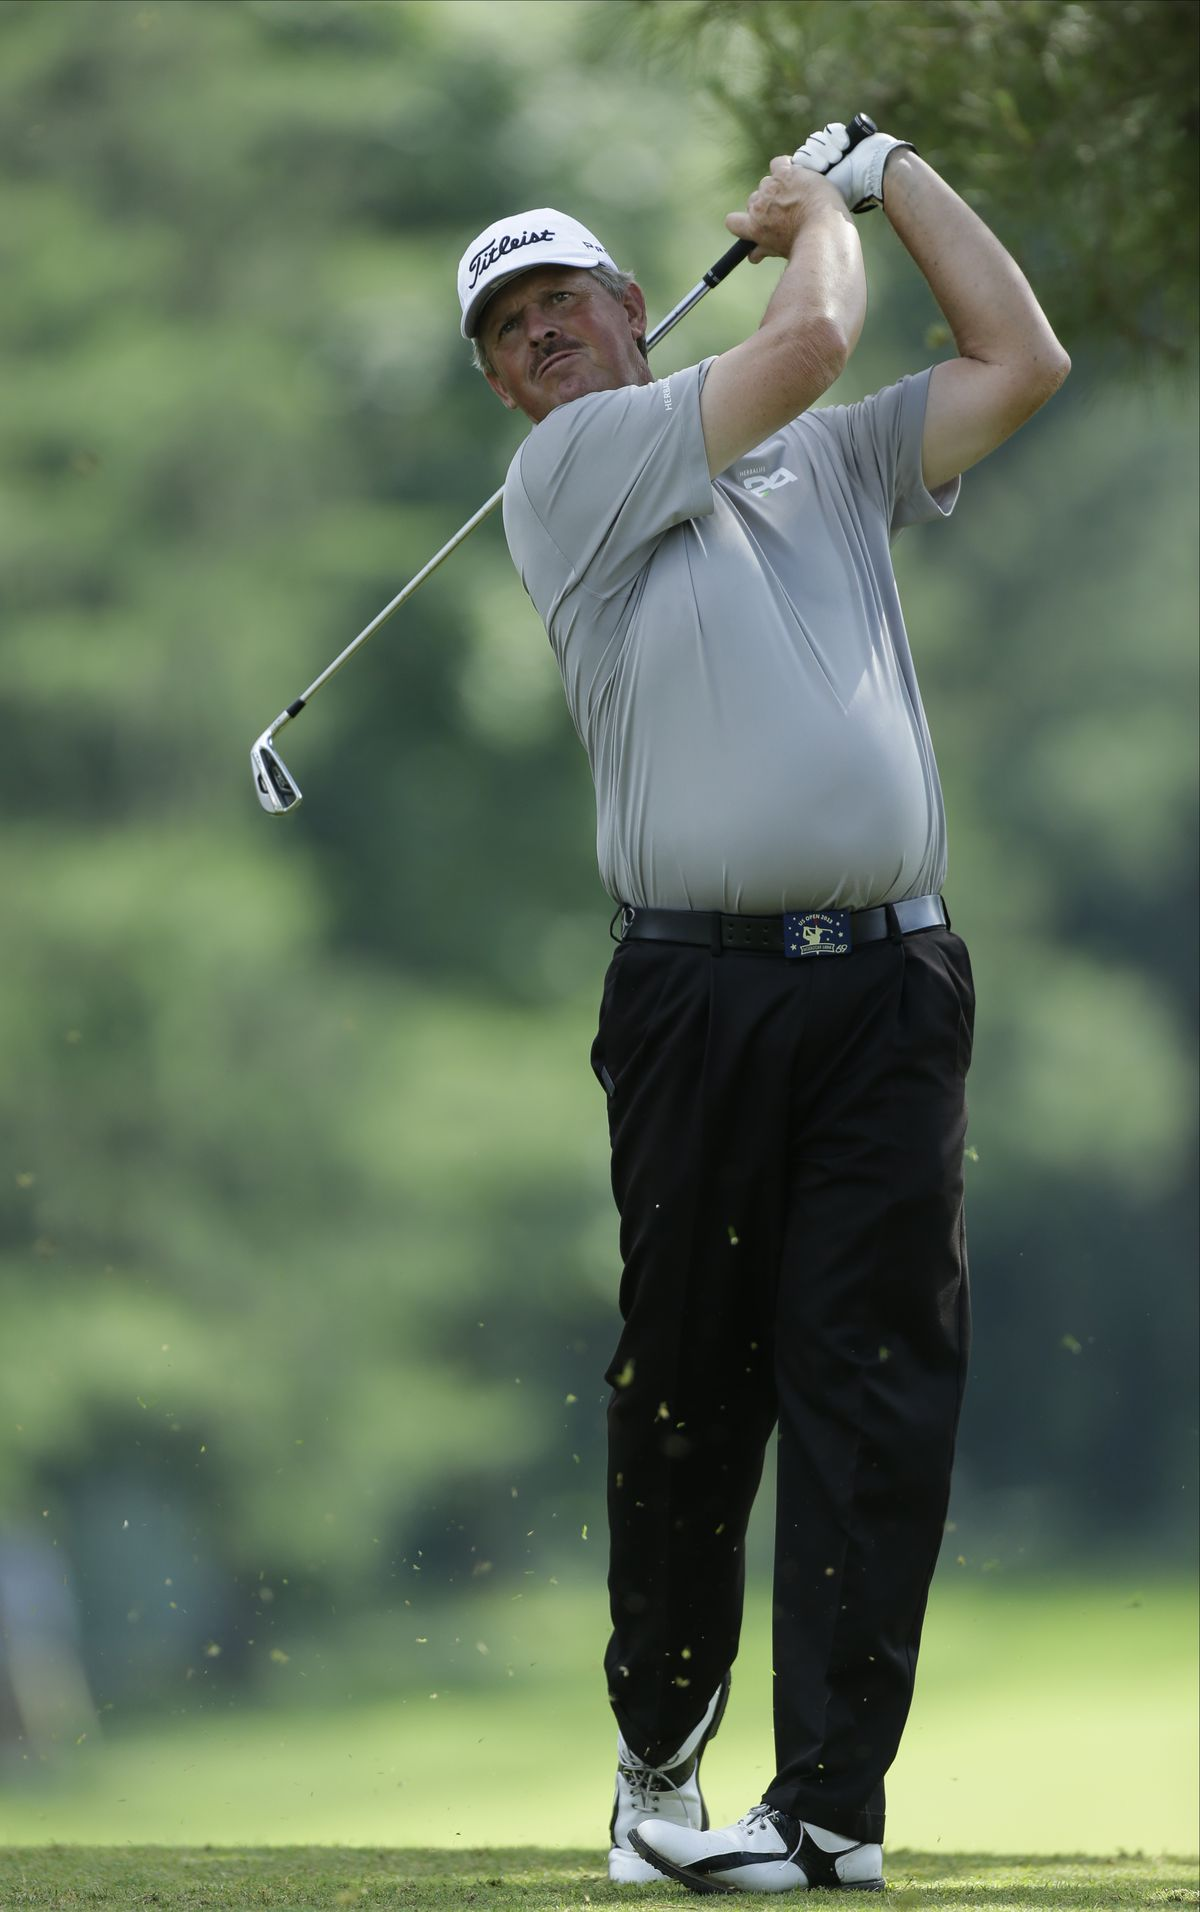 Jay Don Blake tees off on the eighth hole during the first round of the U.S. Open golf tournament at Merion Golf Club, Thursday, June 13, 2013, in Ardmore, Pa. (AP Photo/Julio Cortez)